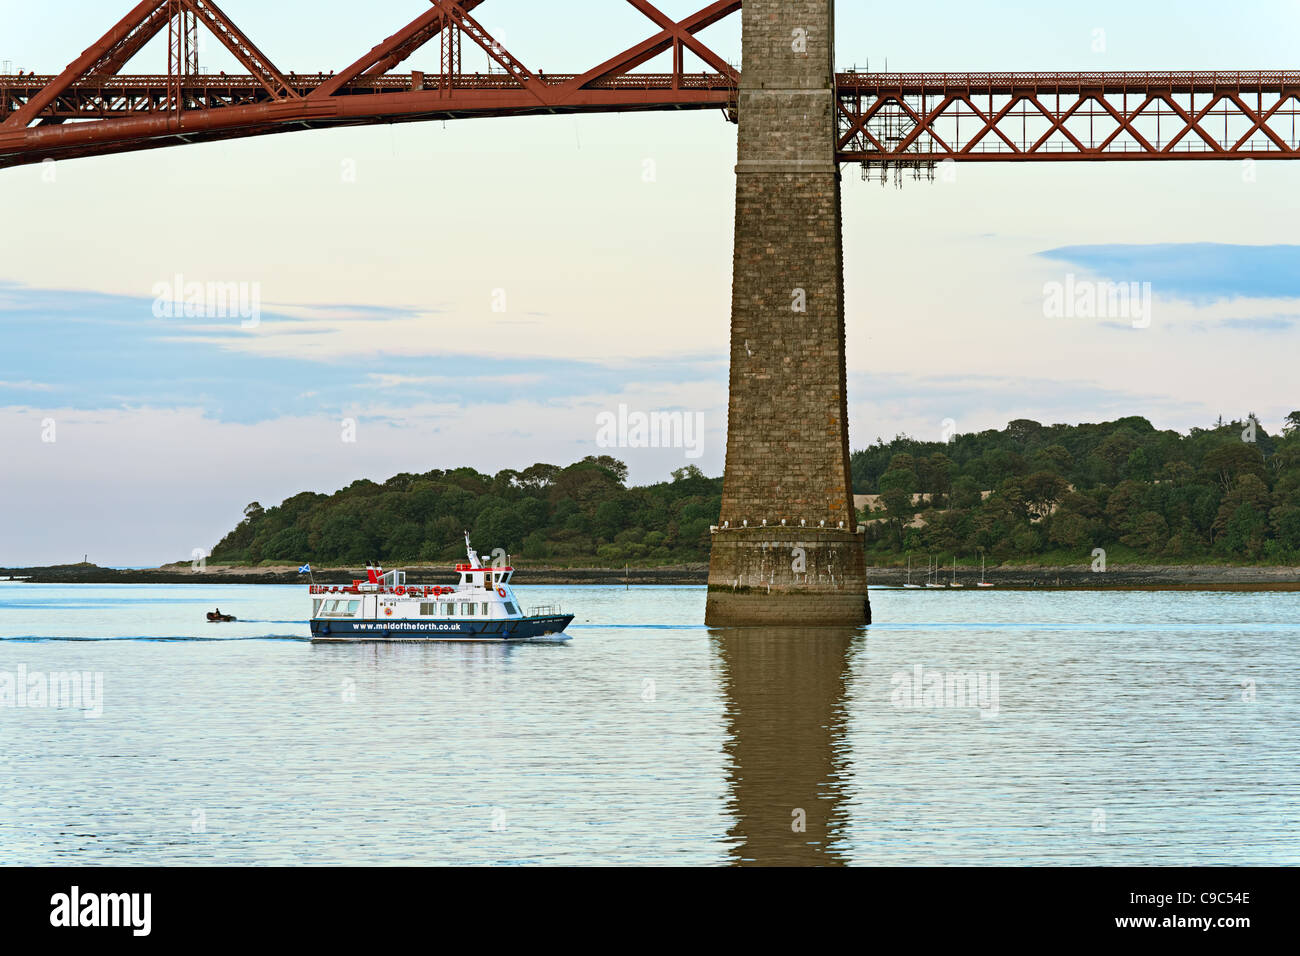 Maid of the Forth, a passenger vessel on the Firth of Forth, cruising past the Forth Rail Bridge, South Queensferry, - Stock Image